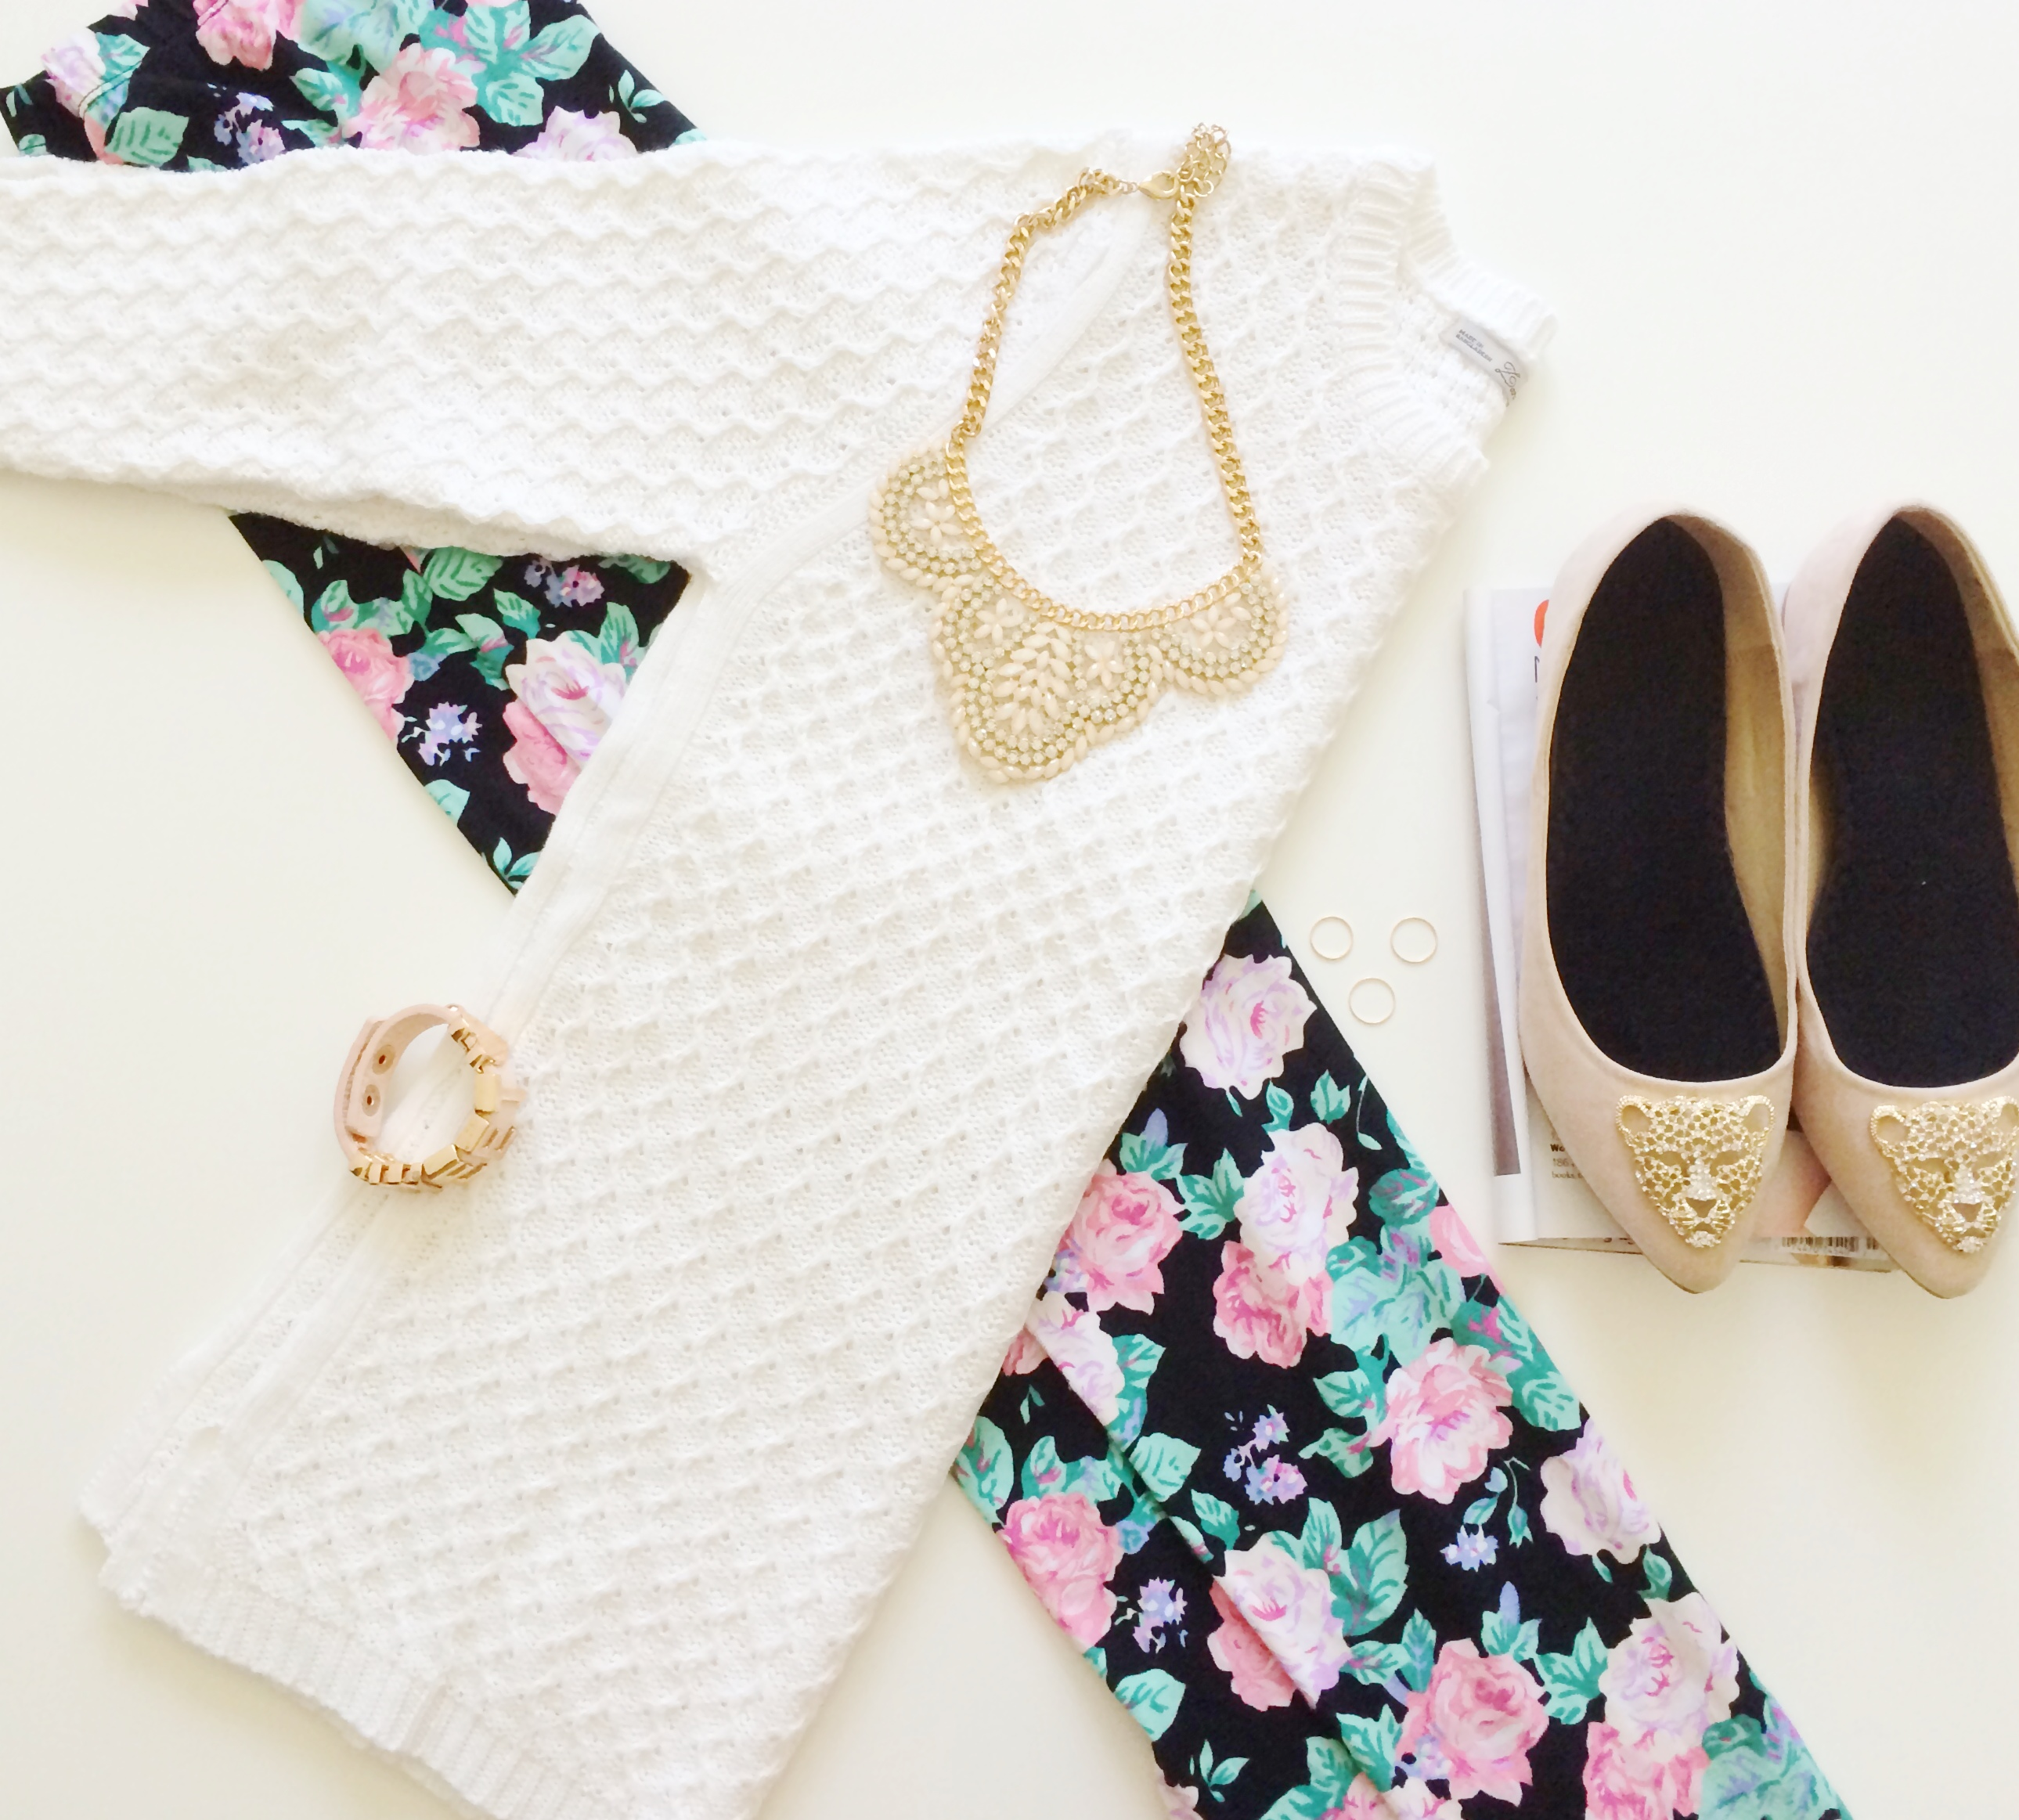 Lately Loving: Floral Prints